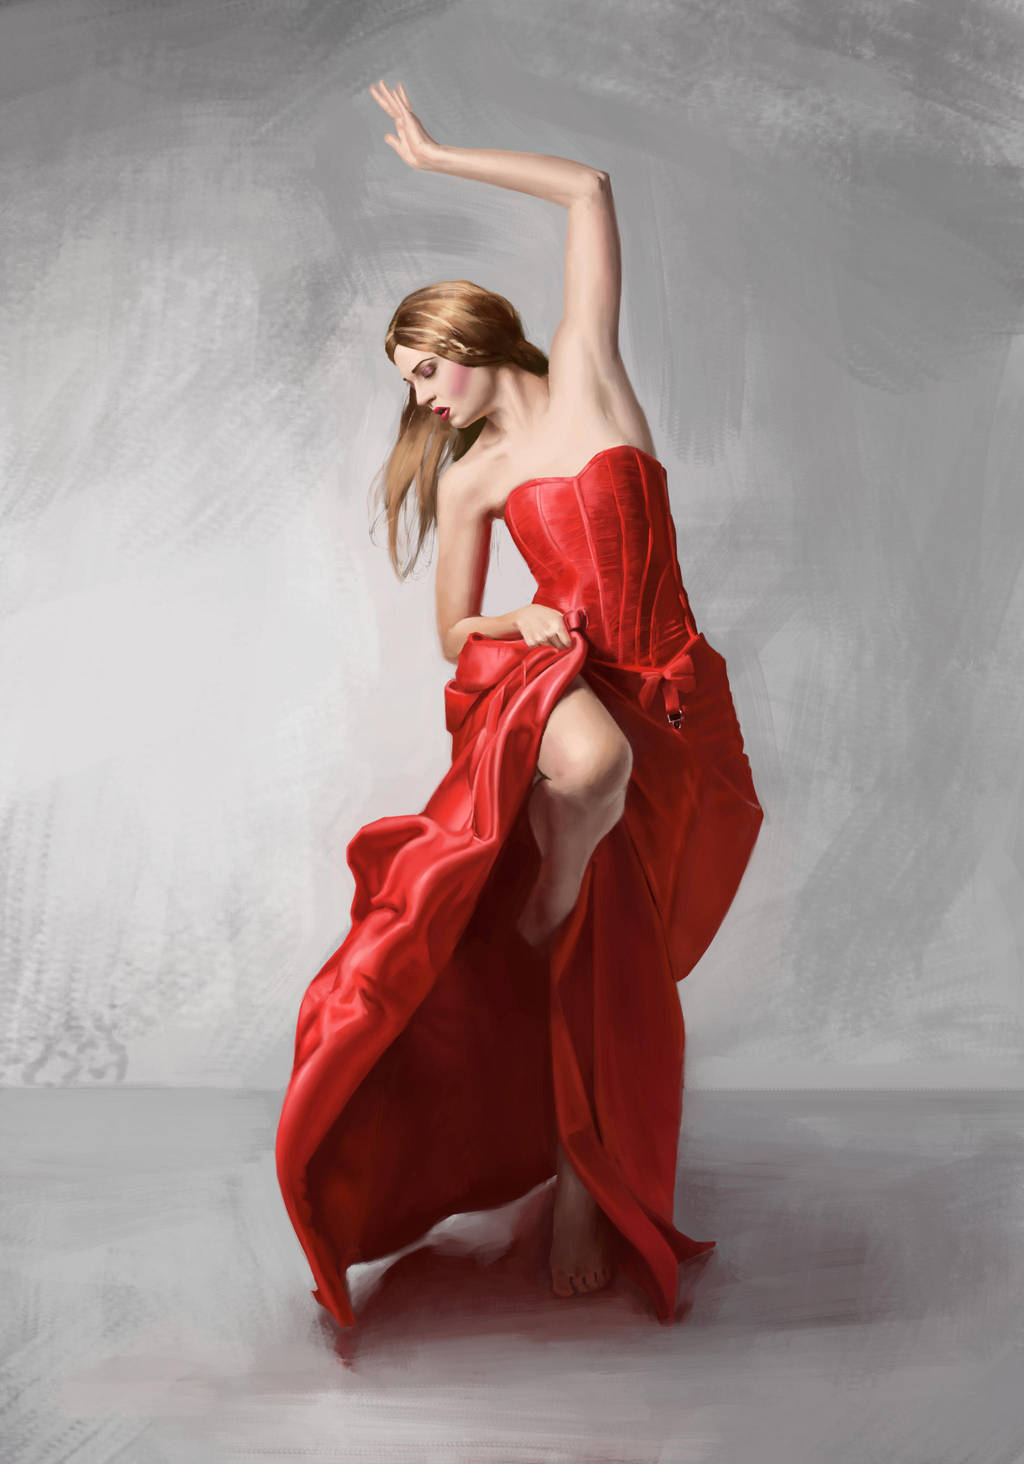 Dancing Woman in Red by Jessso